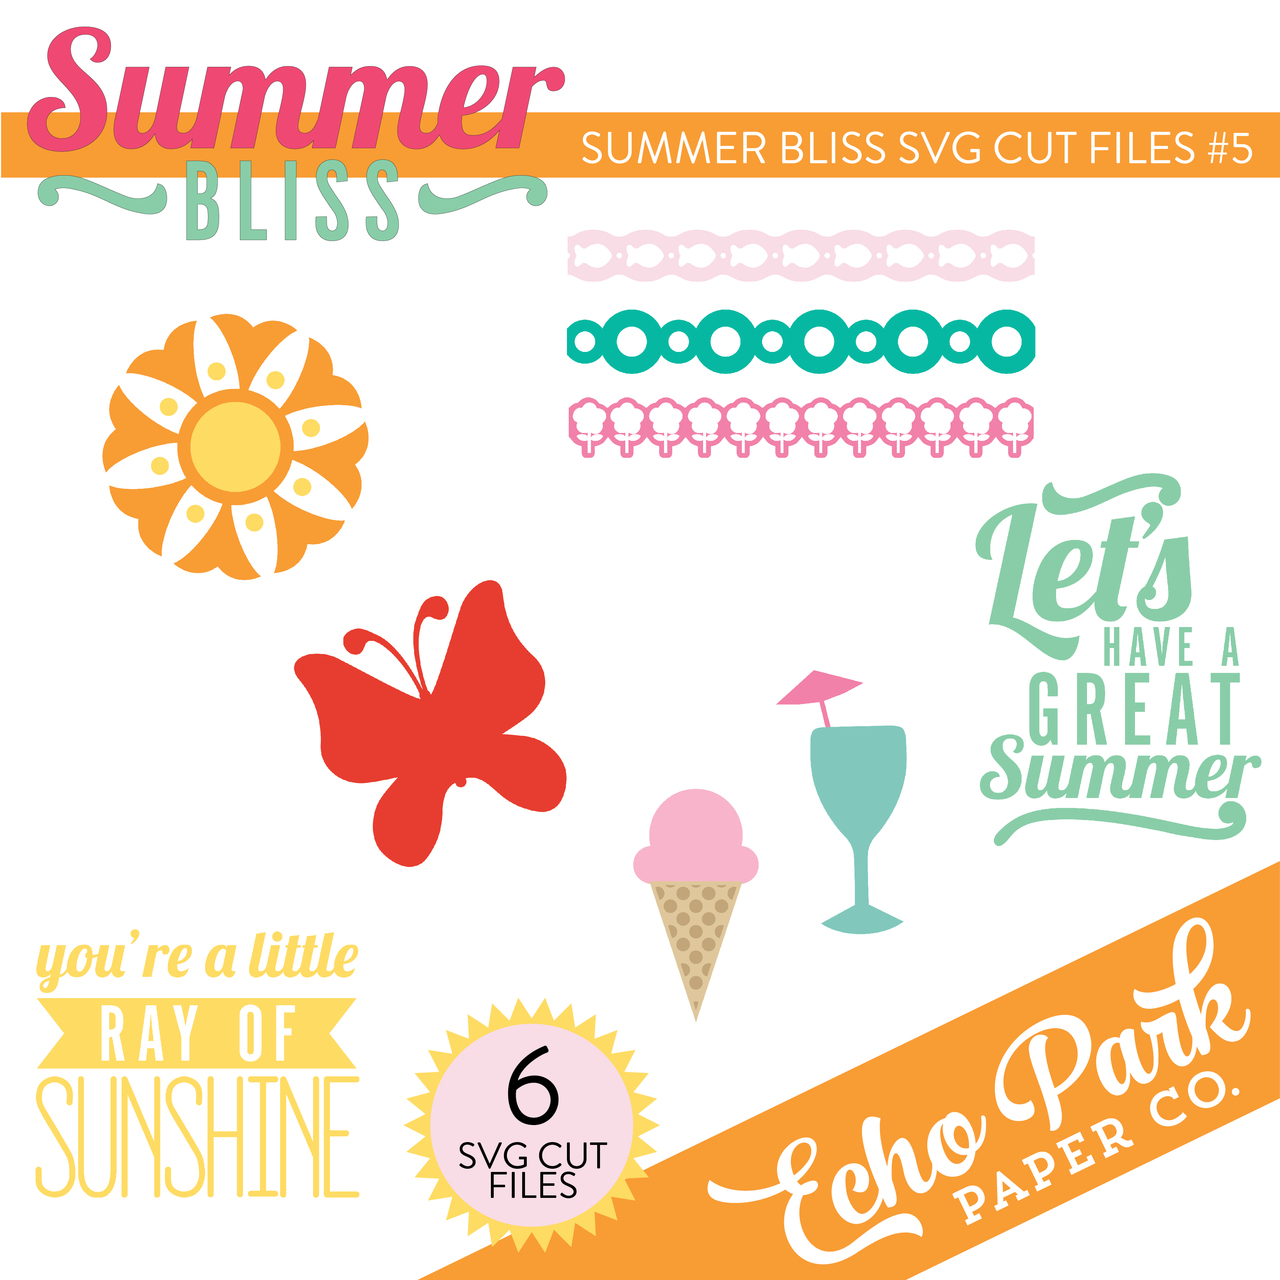 Summer Bliss SVG Cut Files #5